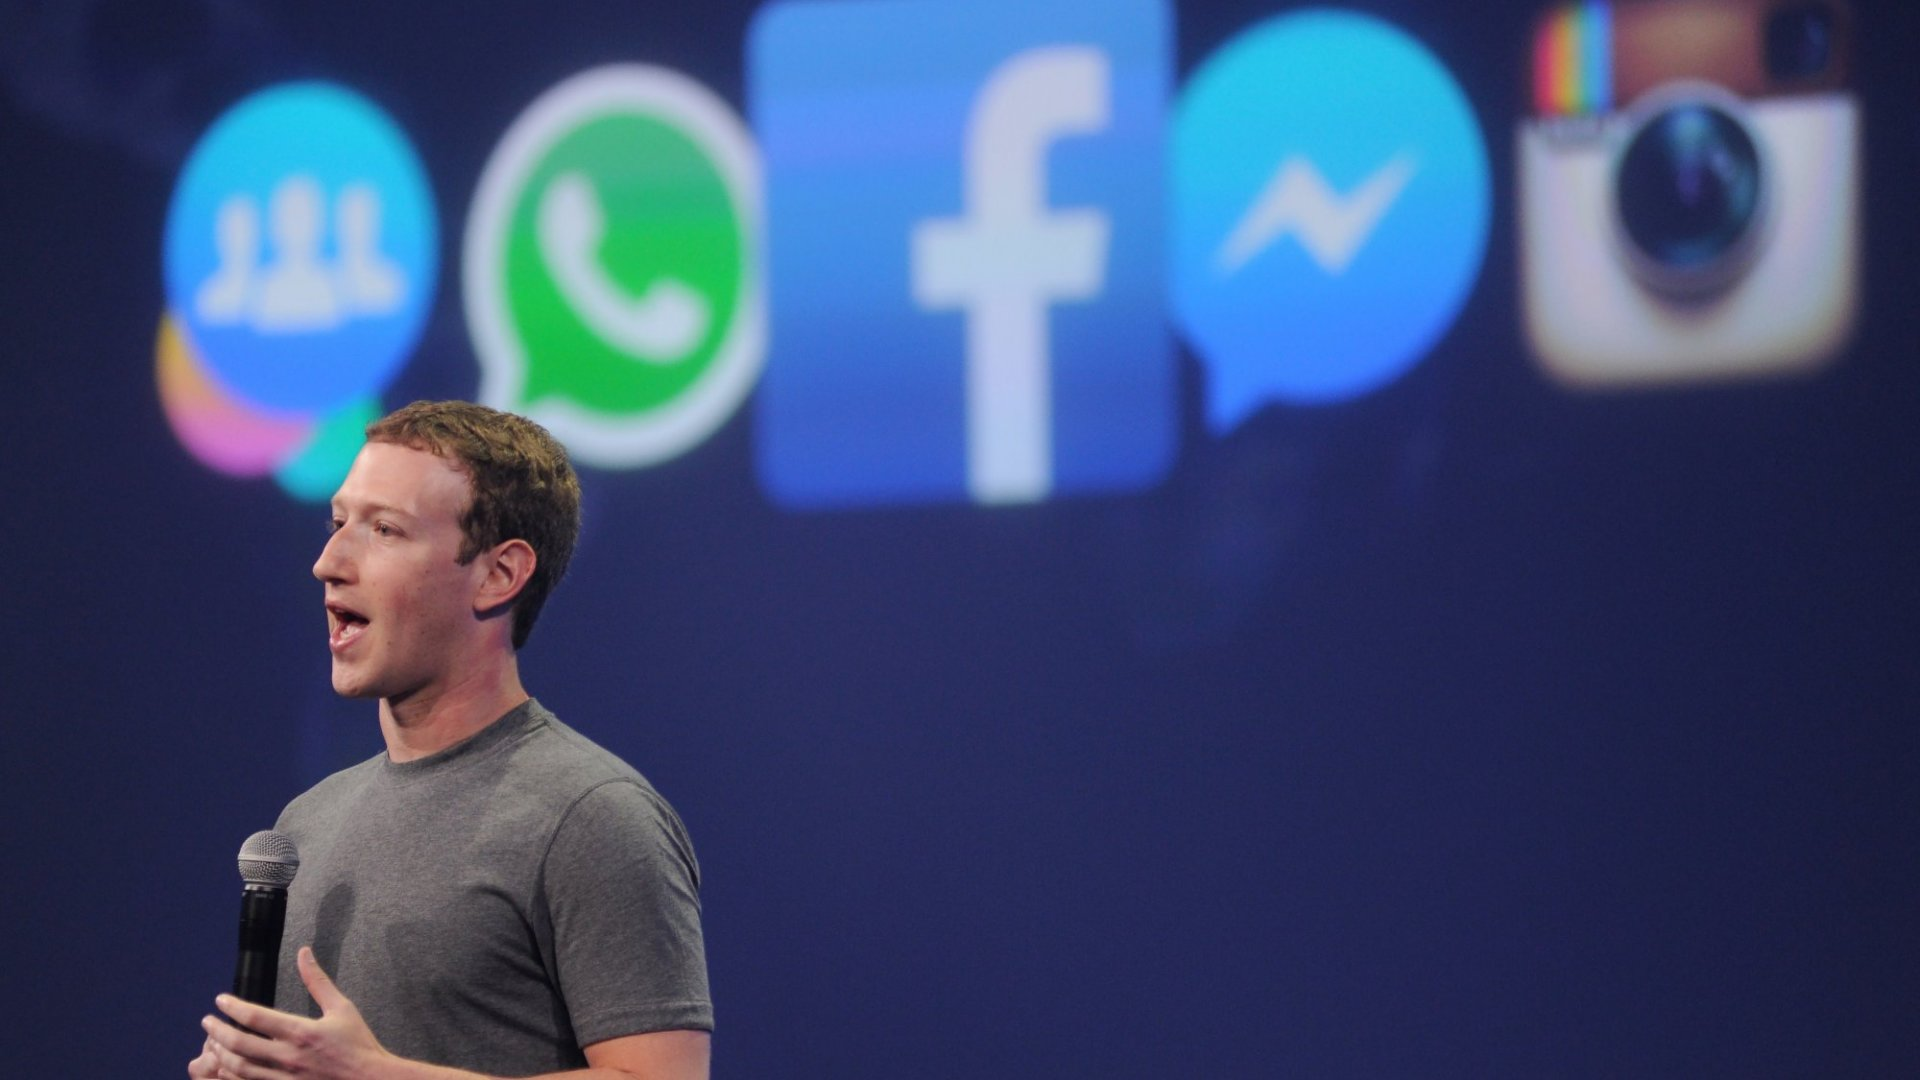 Mark Zuckerberg's Challenge for the New Year: Build an AI Butler for Himself